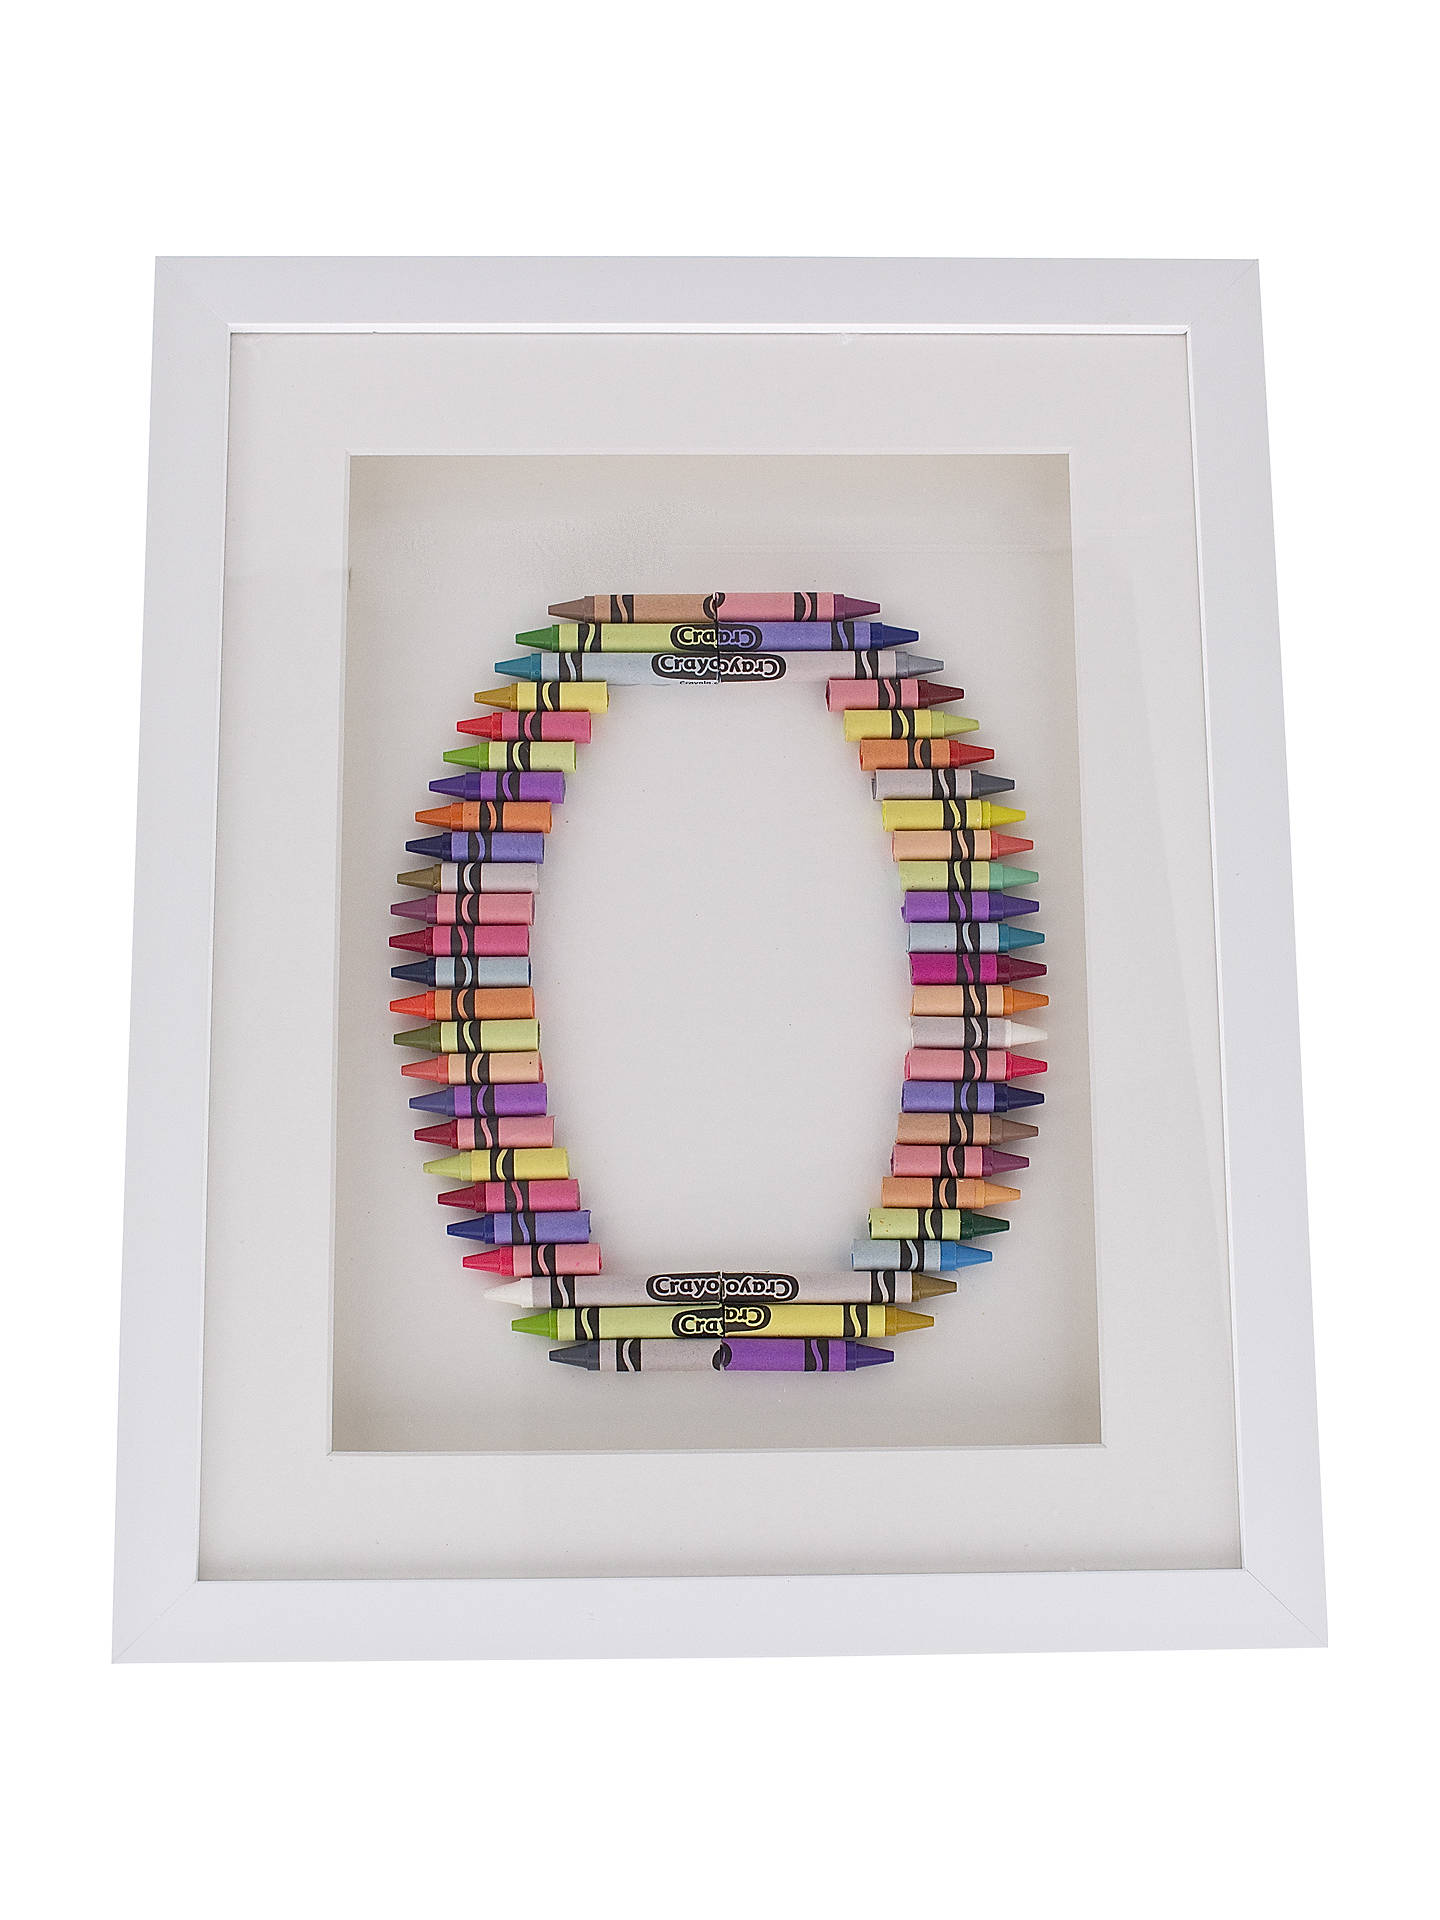 BuyThe Letteroom Crayon O Framed 3D Artwork, 34 x 29cm Online at johnlewis.com